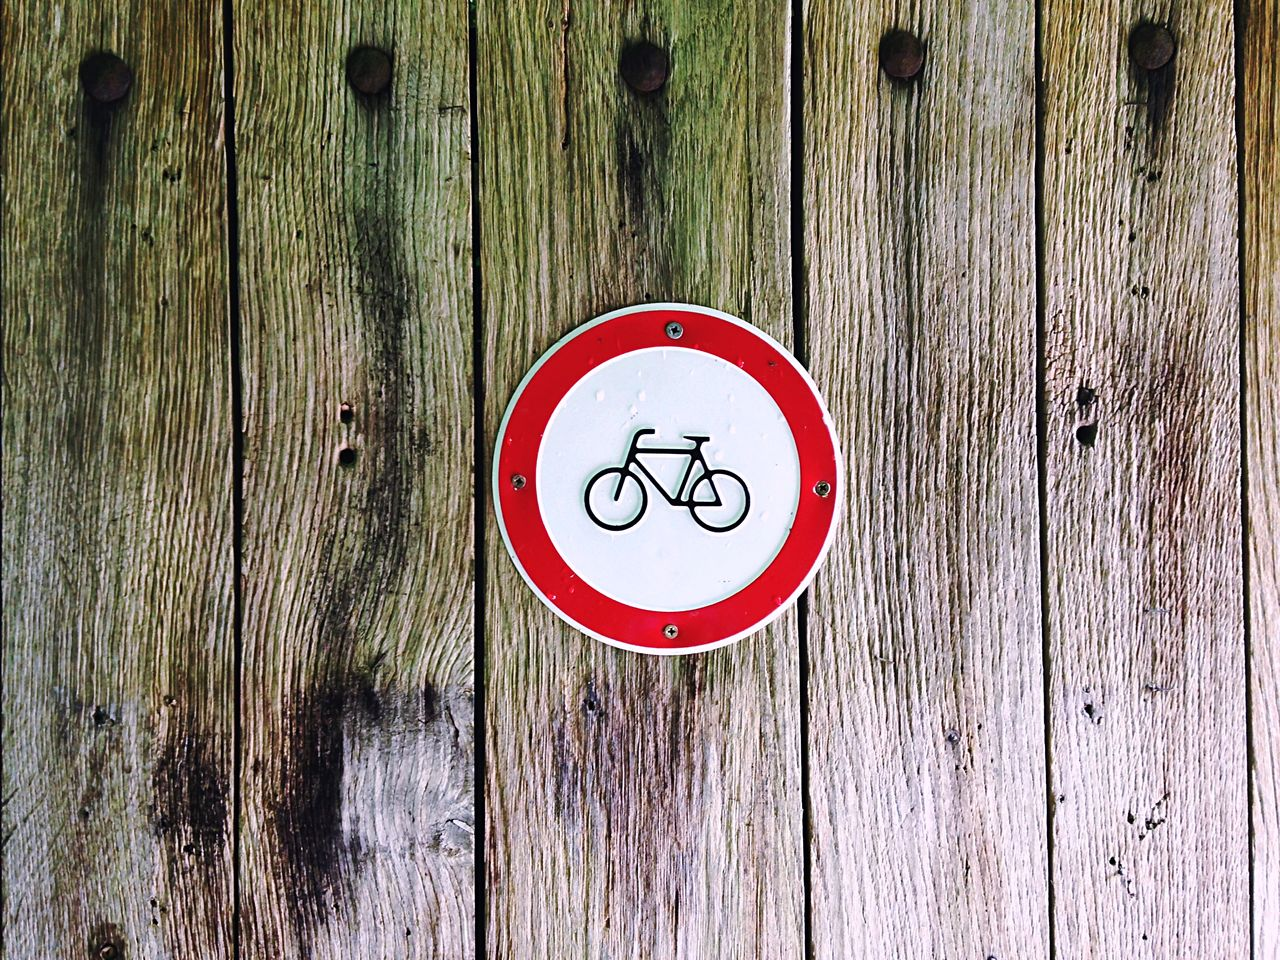 Close-Up Of Information Sign On Wooden Planks